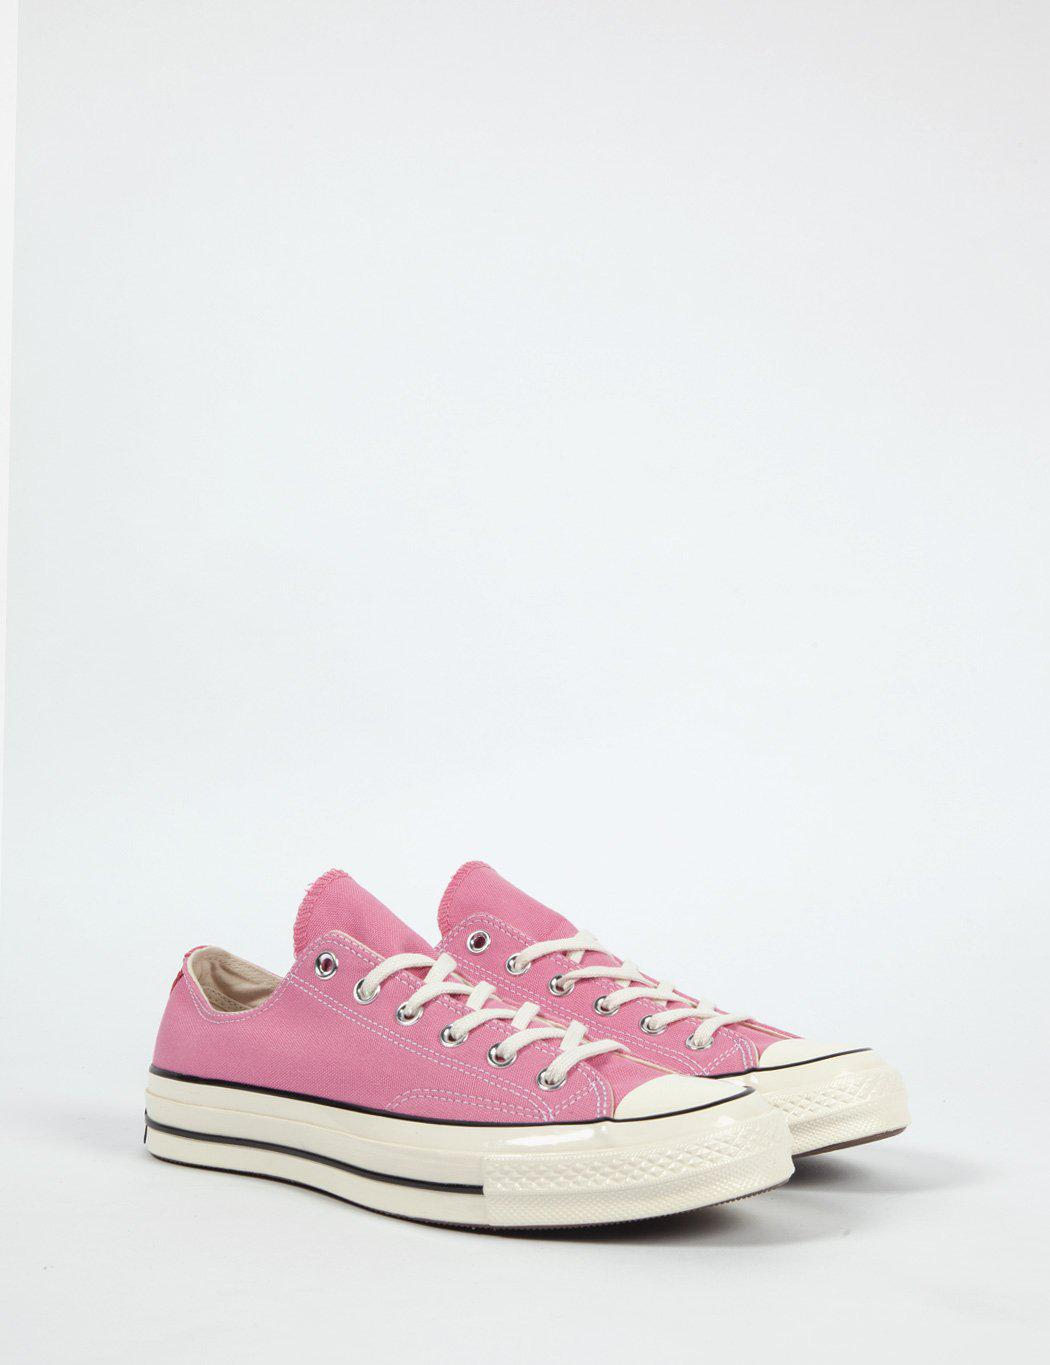 7cfa3677f848 ... where to buy lyst converse 70s chuck taylor low canvas in pink for men  a3afa 73d1e